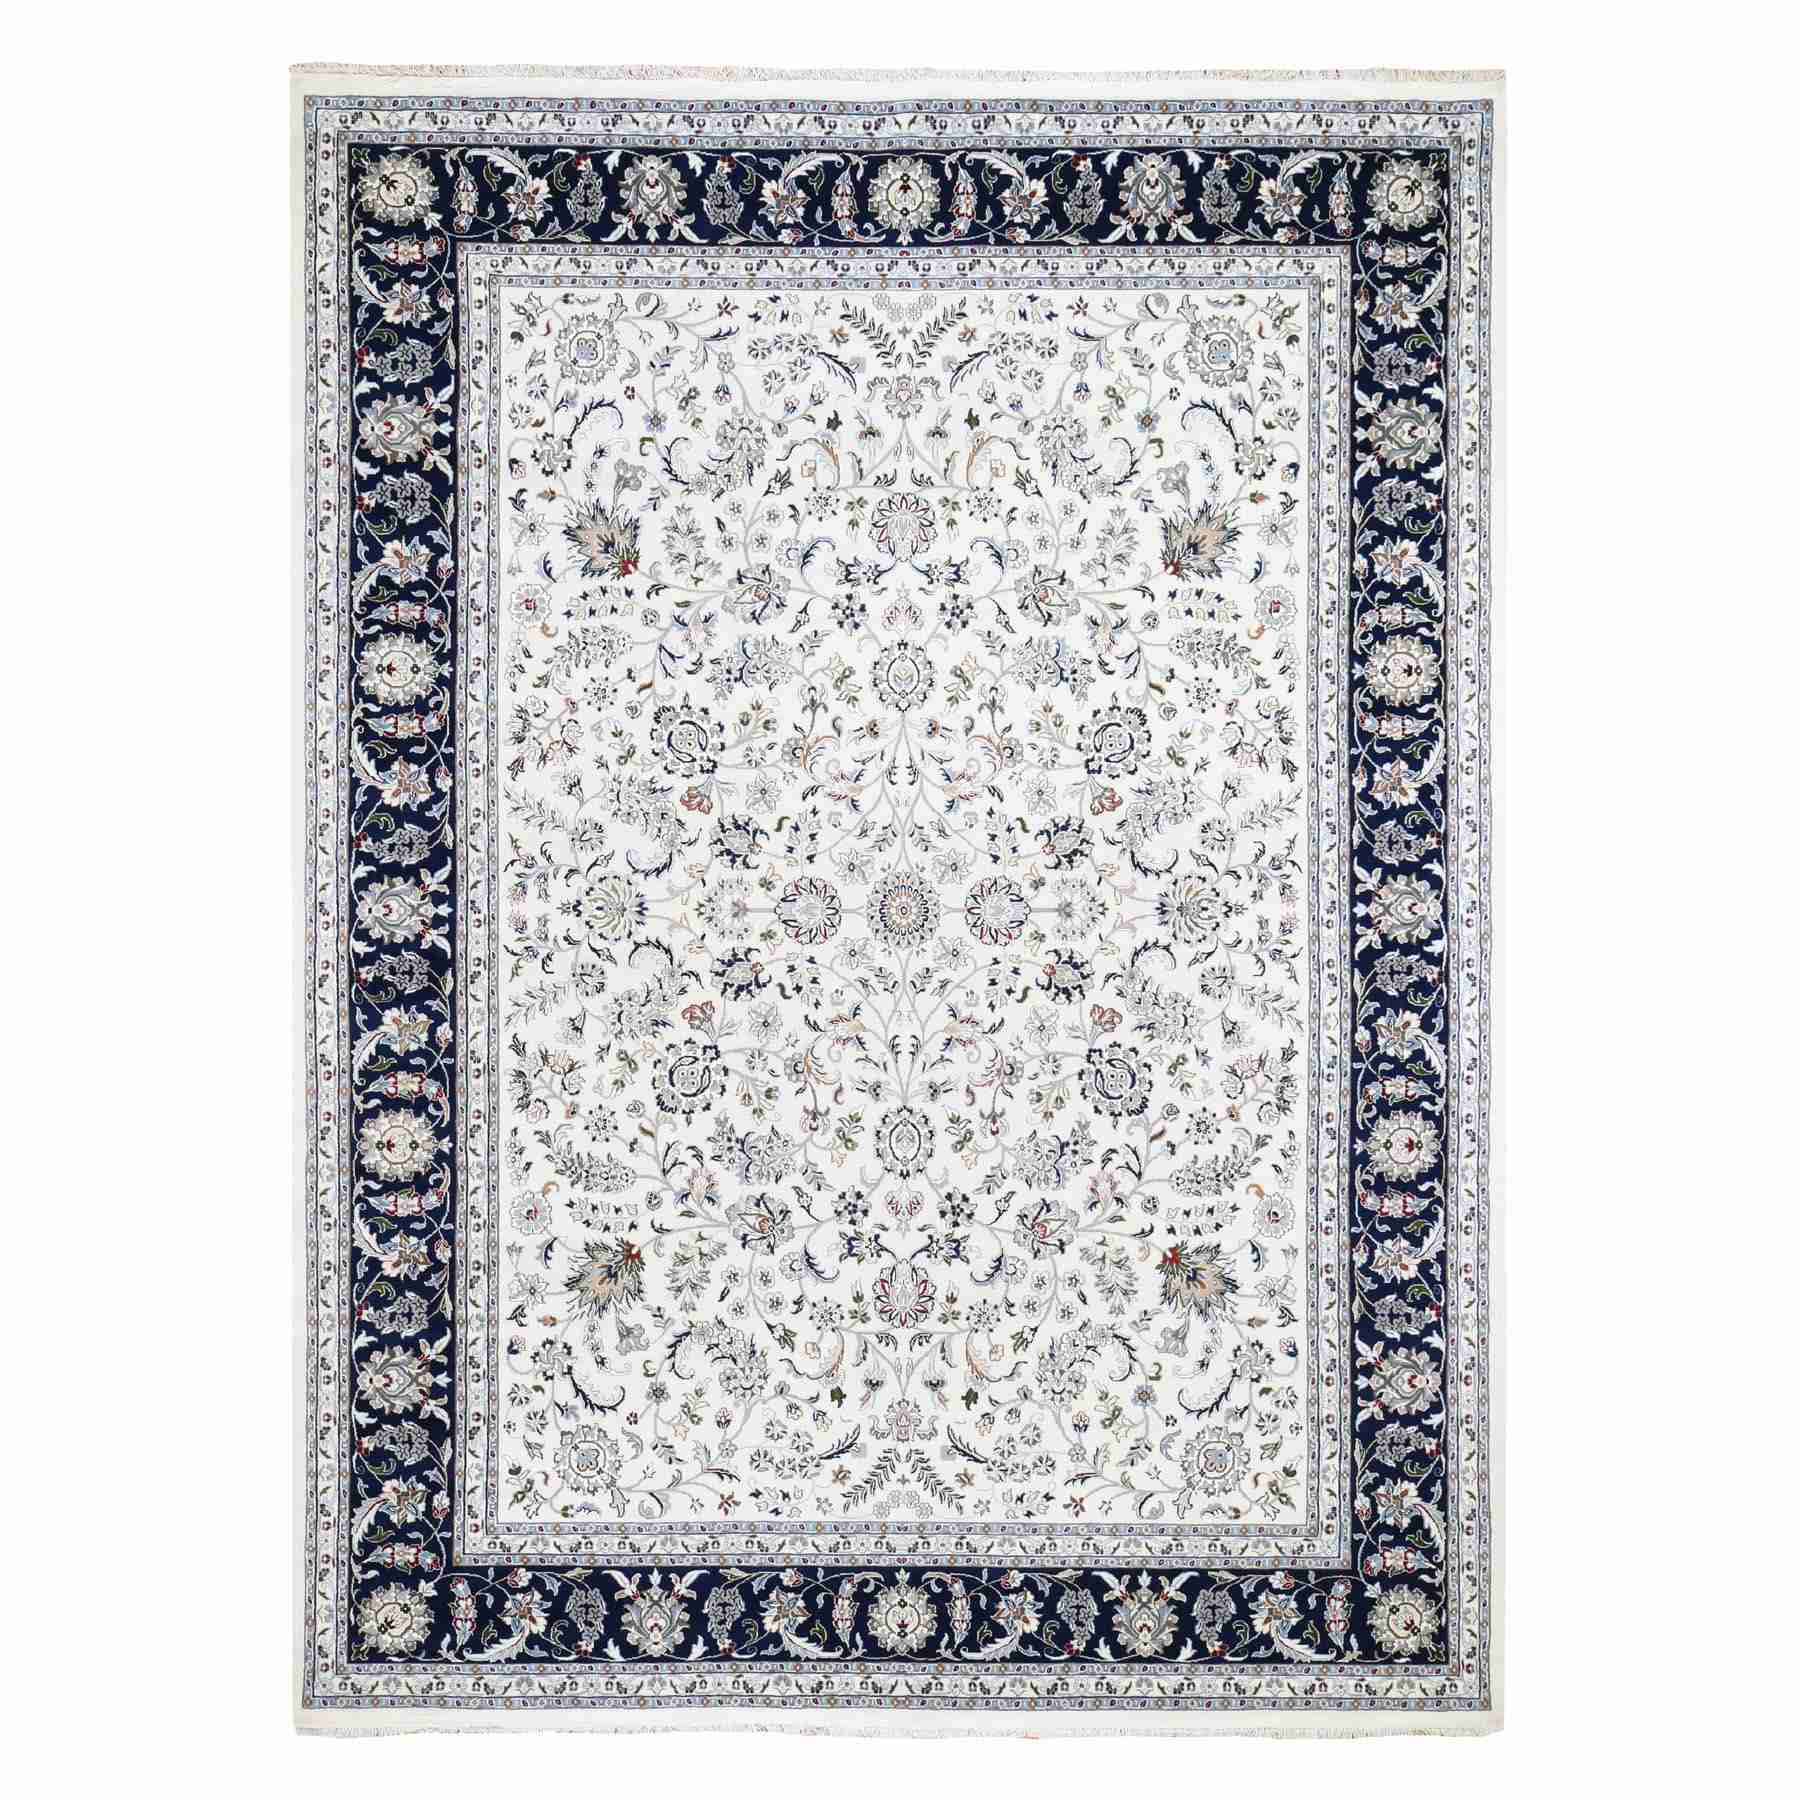 Wool And Silk 250 KPSI All Over Design Ivory Nain Hand Knotted Oriental Rug